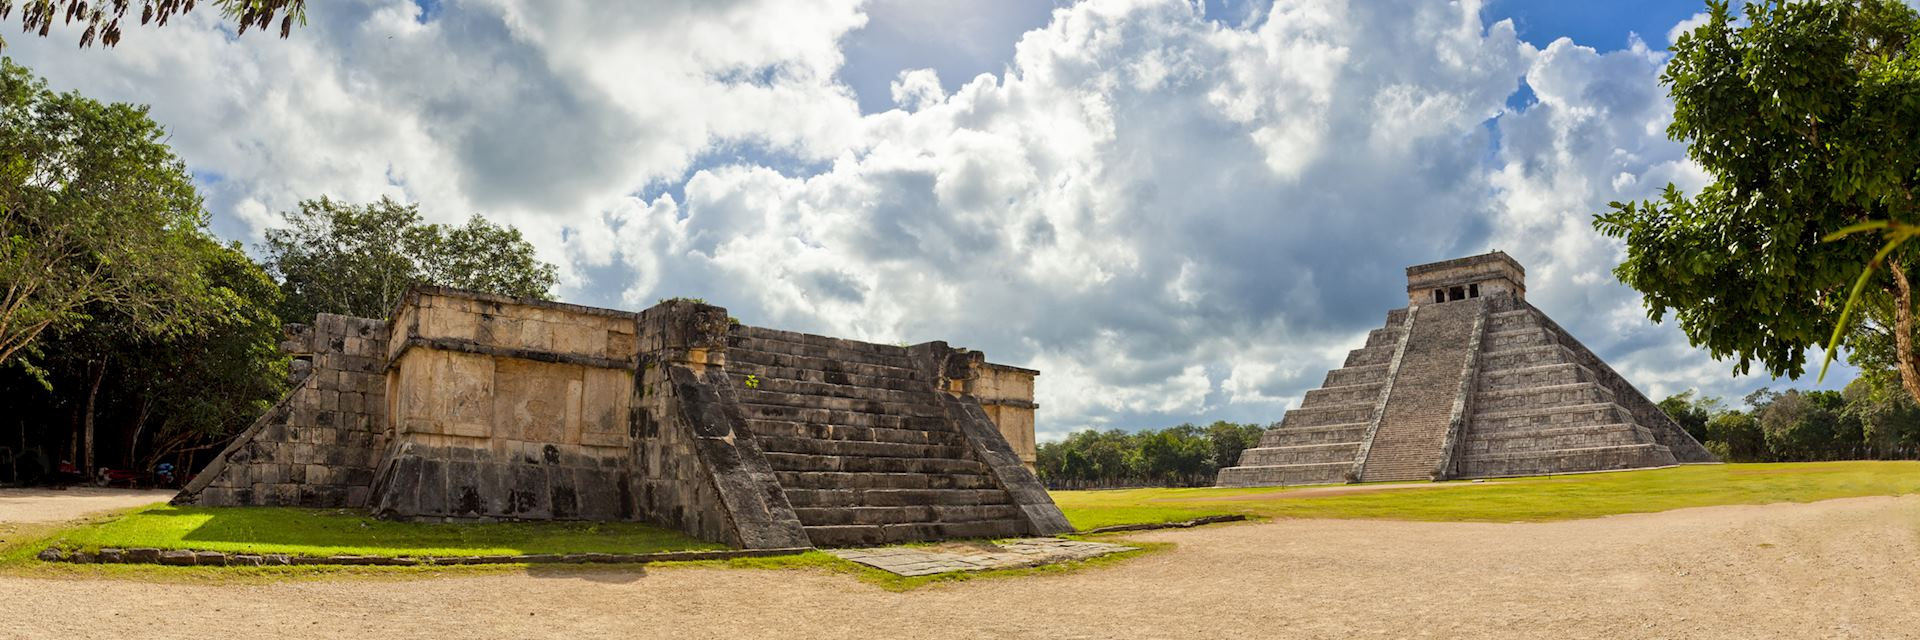 The site of the 12th-century Chichén Itzá